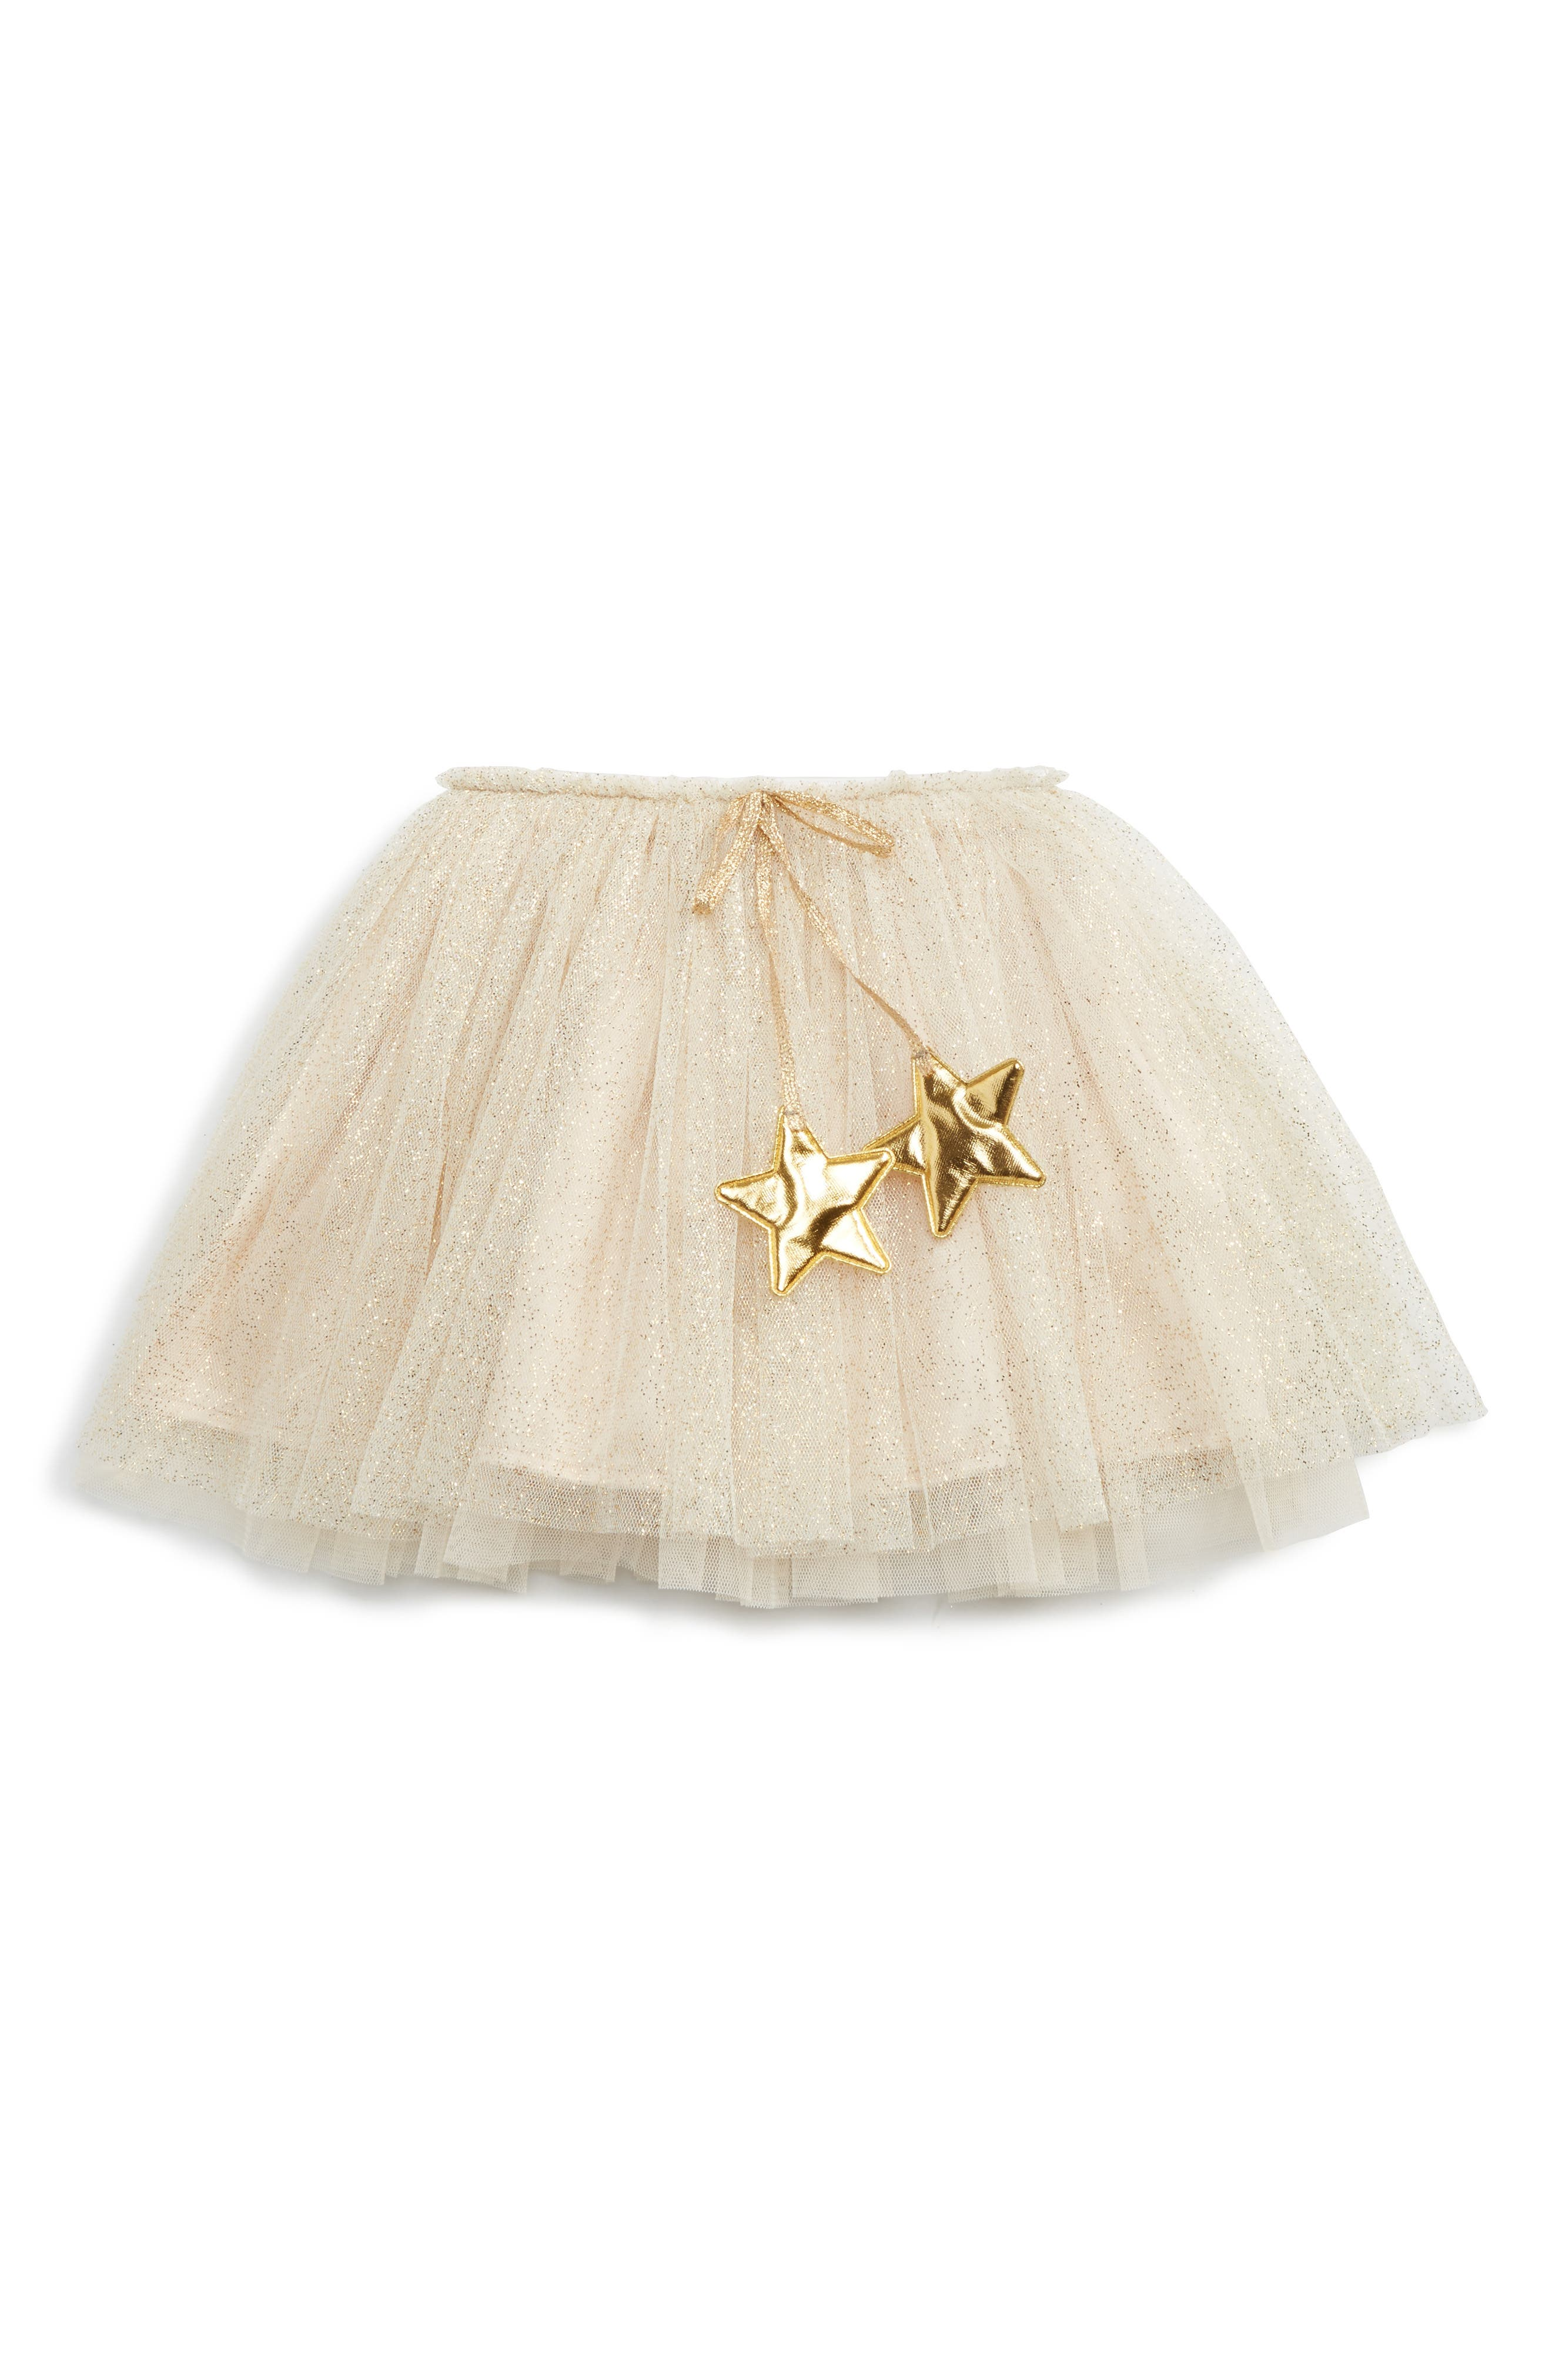 Gold Glitter Star Tutu,                             Alternate thumbnail 2, color,                             GOLD